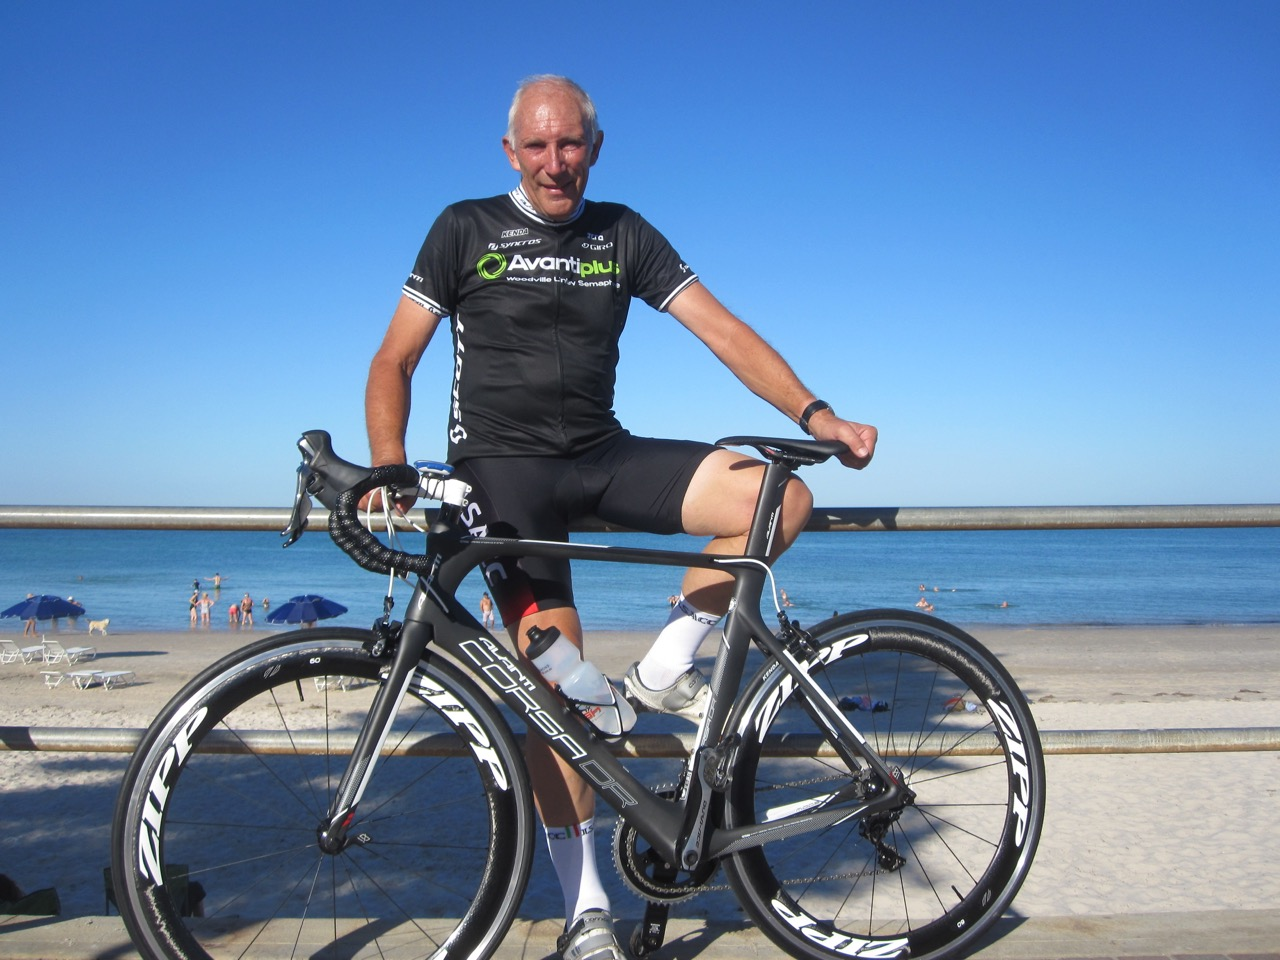 The Bestmed Tour of Good Hope and Bestmed Jock Tour will offer the Phil Liggett Tribute trophies to the men's and women's elite winners this year. Photo: Supplied